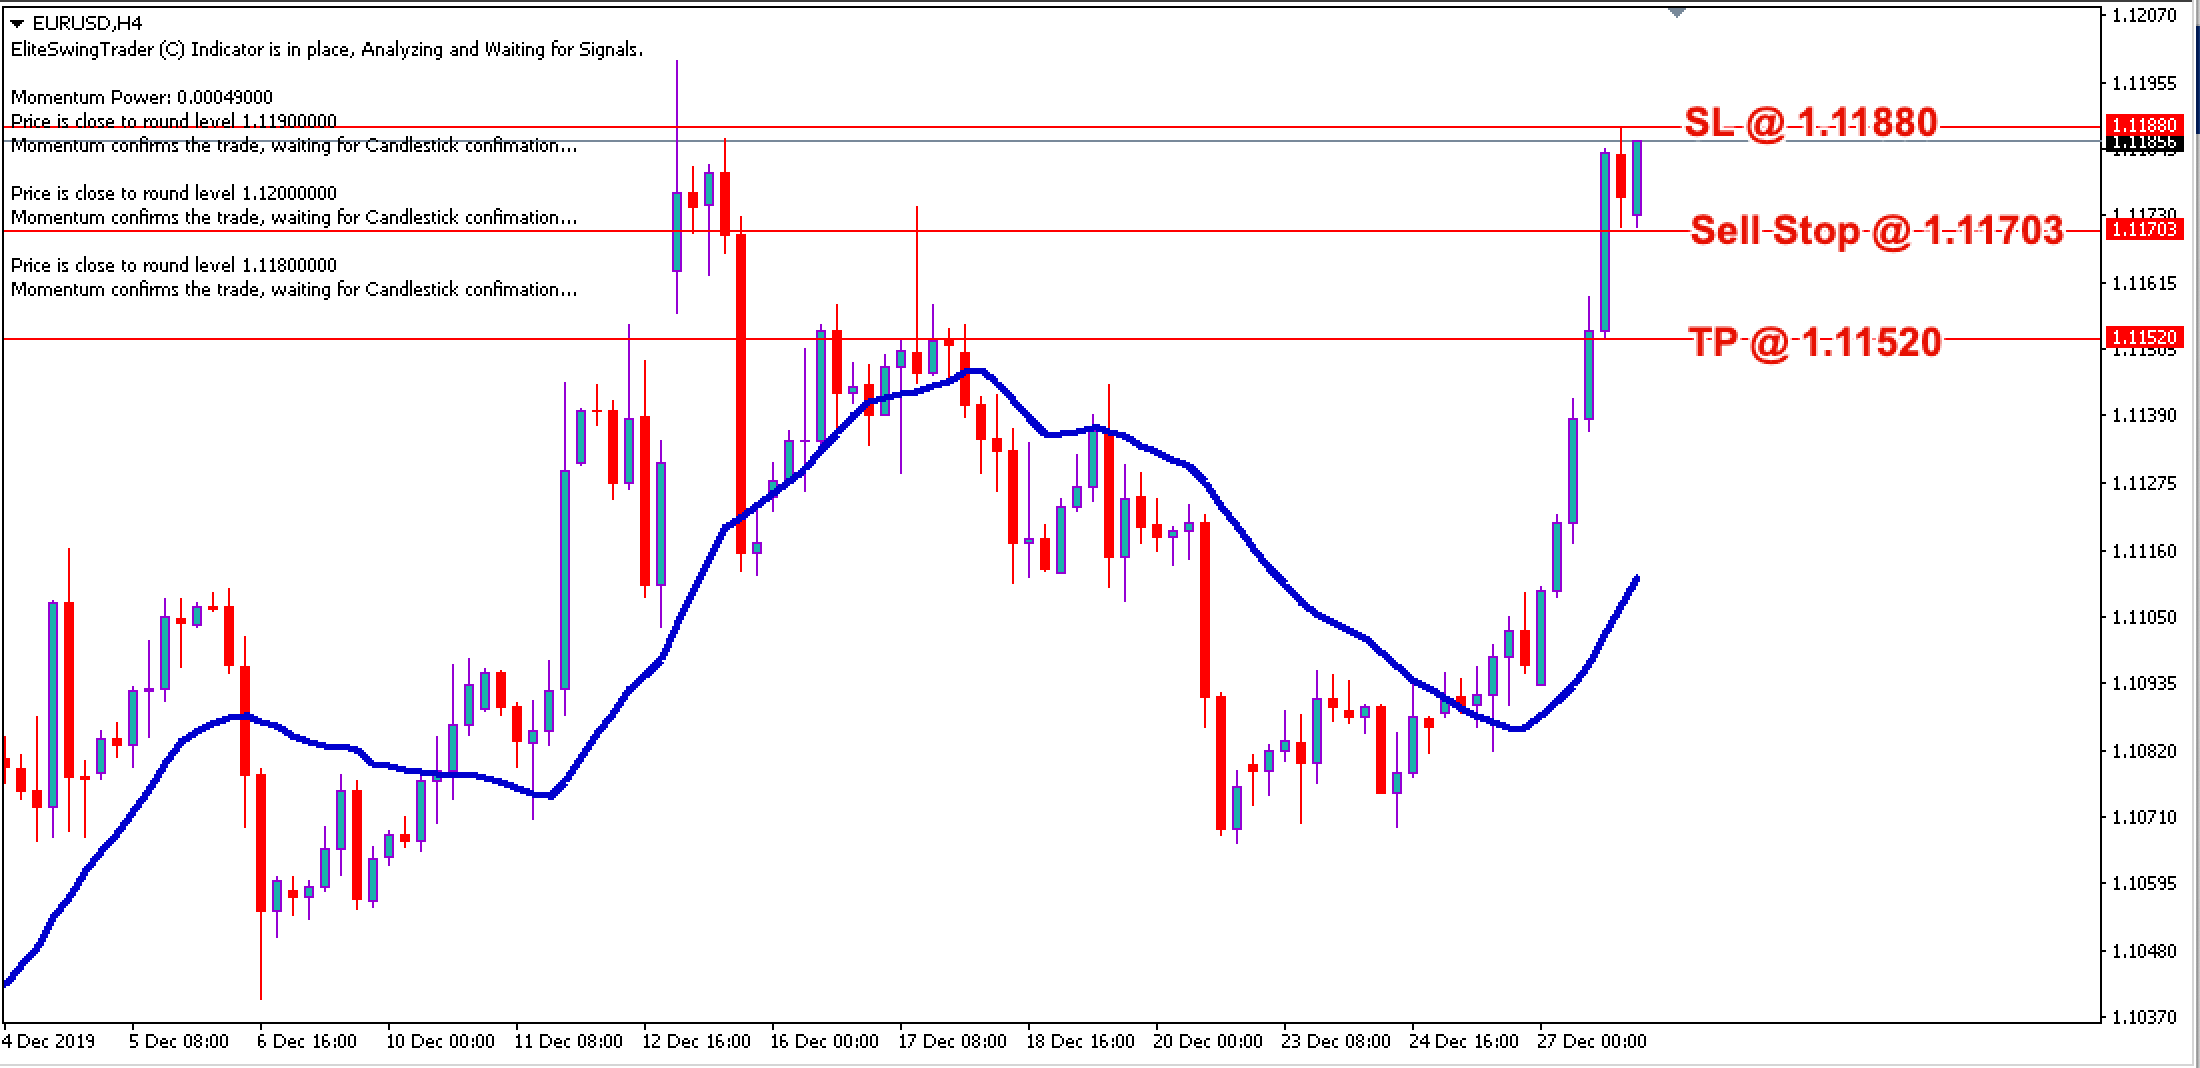 EUR/USD Daily Price Forecast – 30th Dec 2019